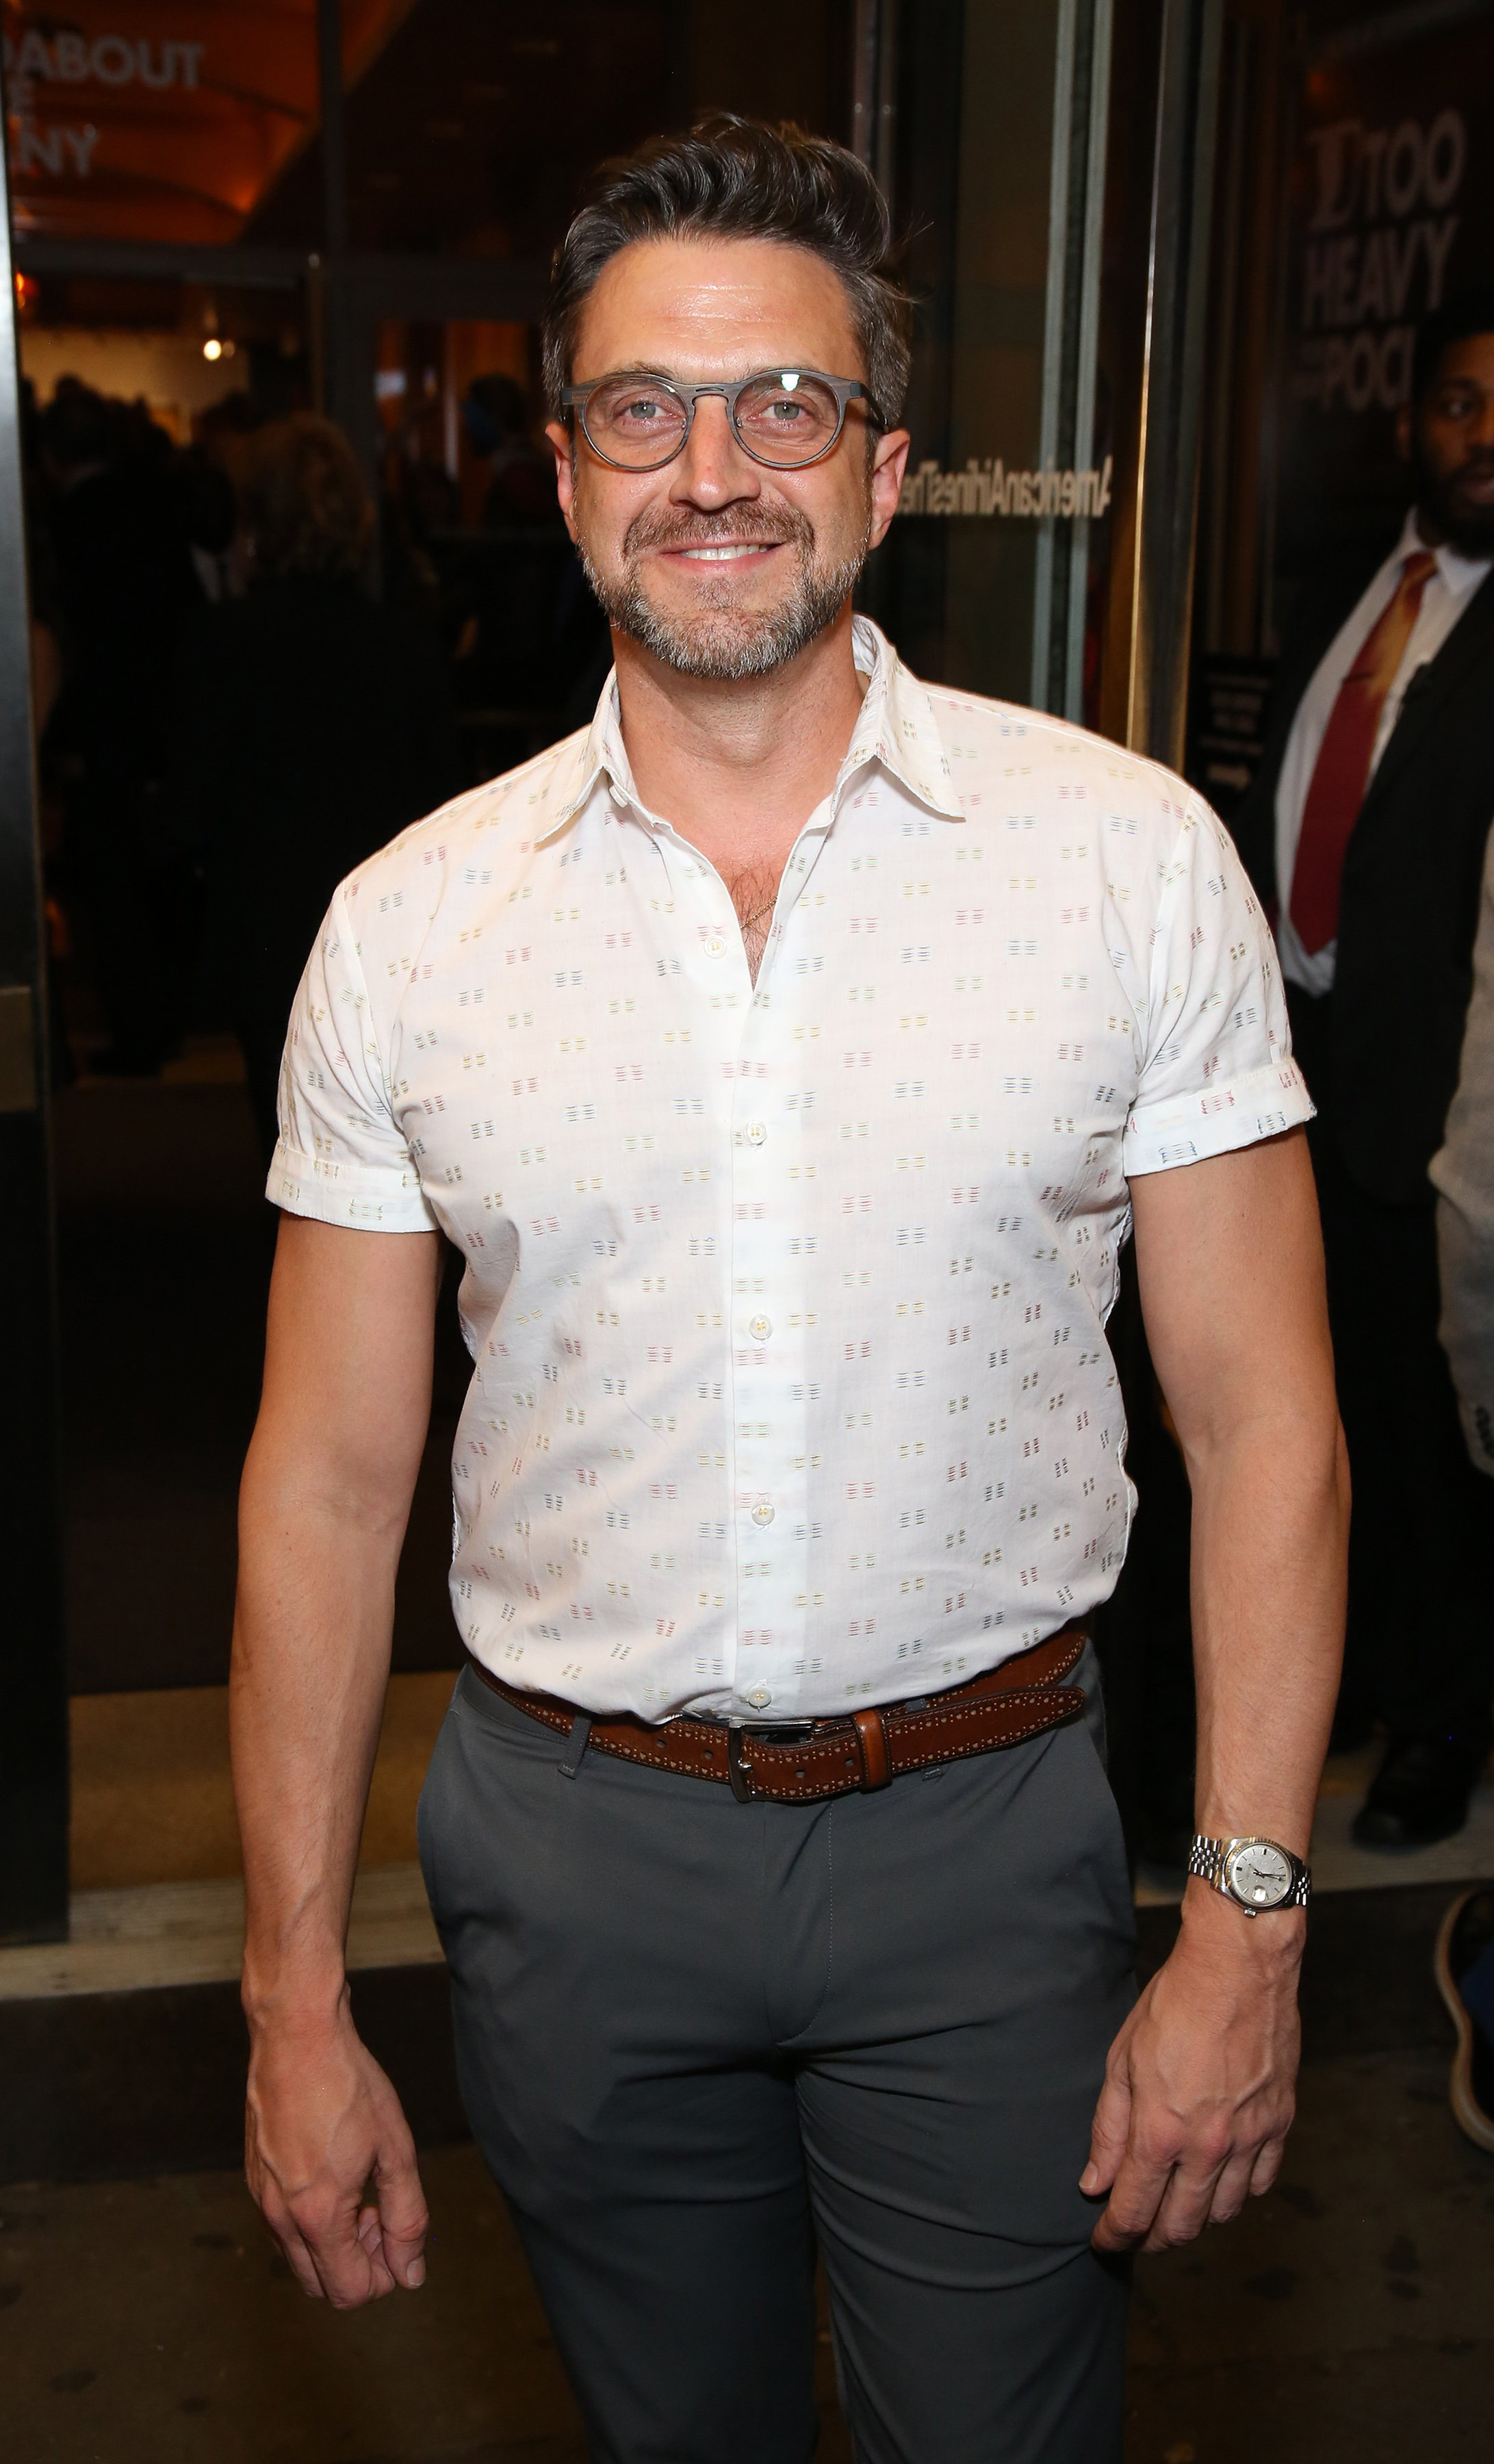 Raul Esparza attends the Broadway Opening Night performance of The Roundabout Theatre Company production of 'Time and The Conways' on October 10, 2017 | Photo: GettyImages